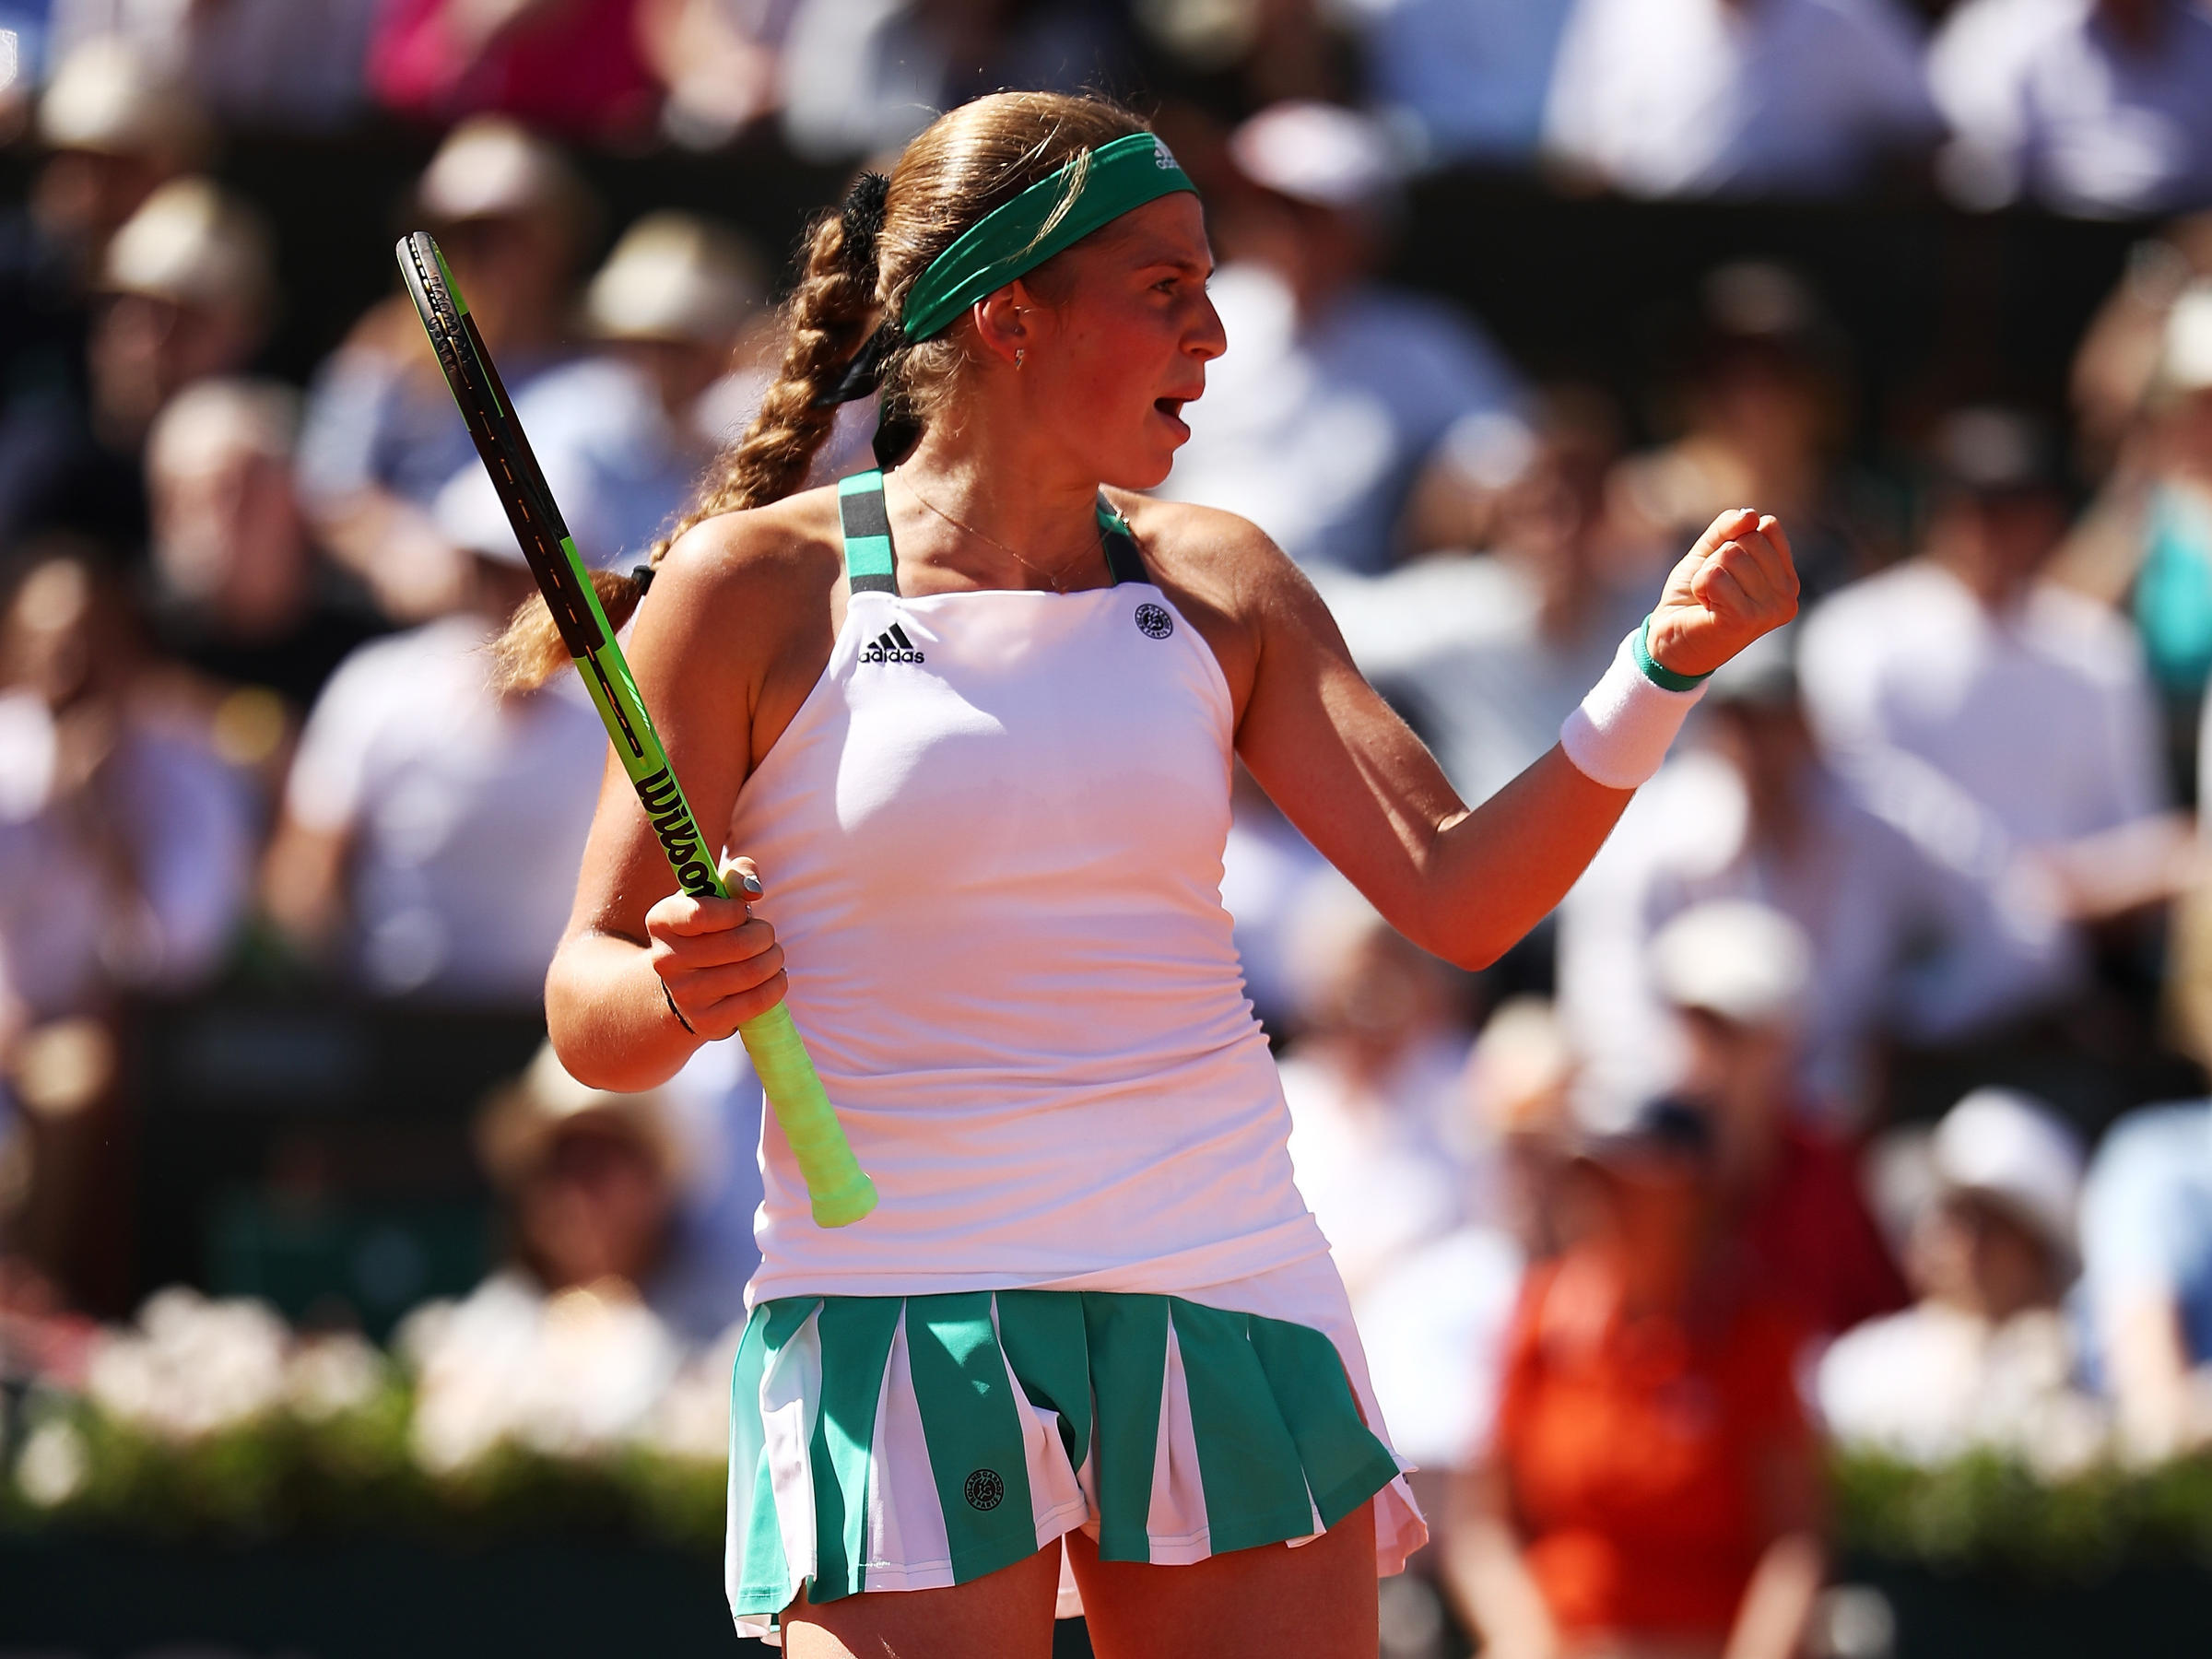 Jelena Ostapenko stuns favourite Simona Halep to win French Open